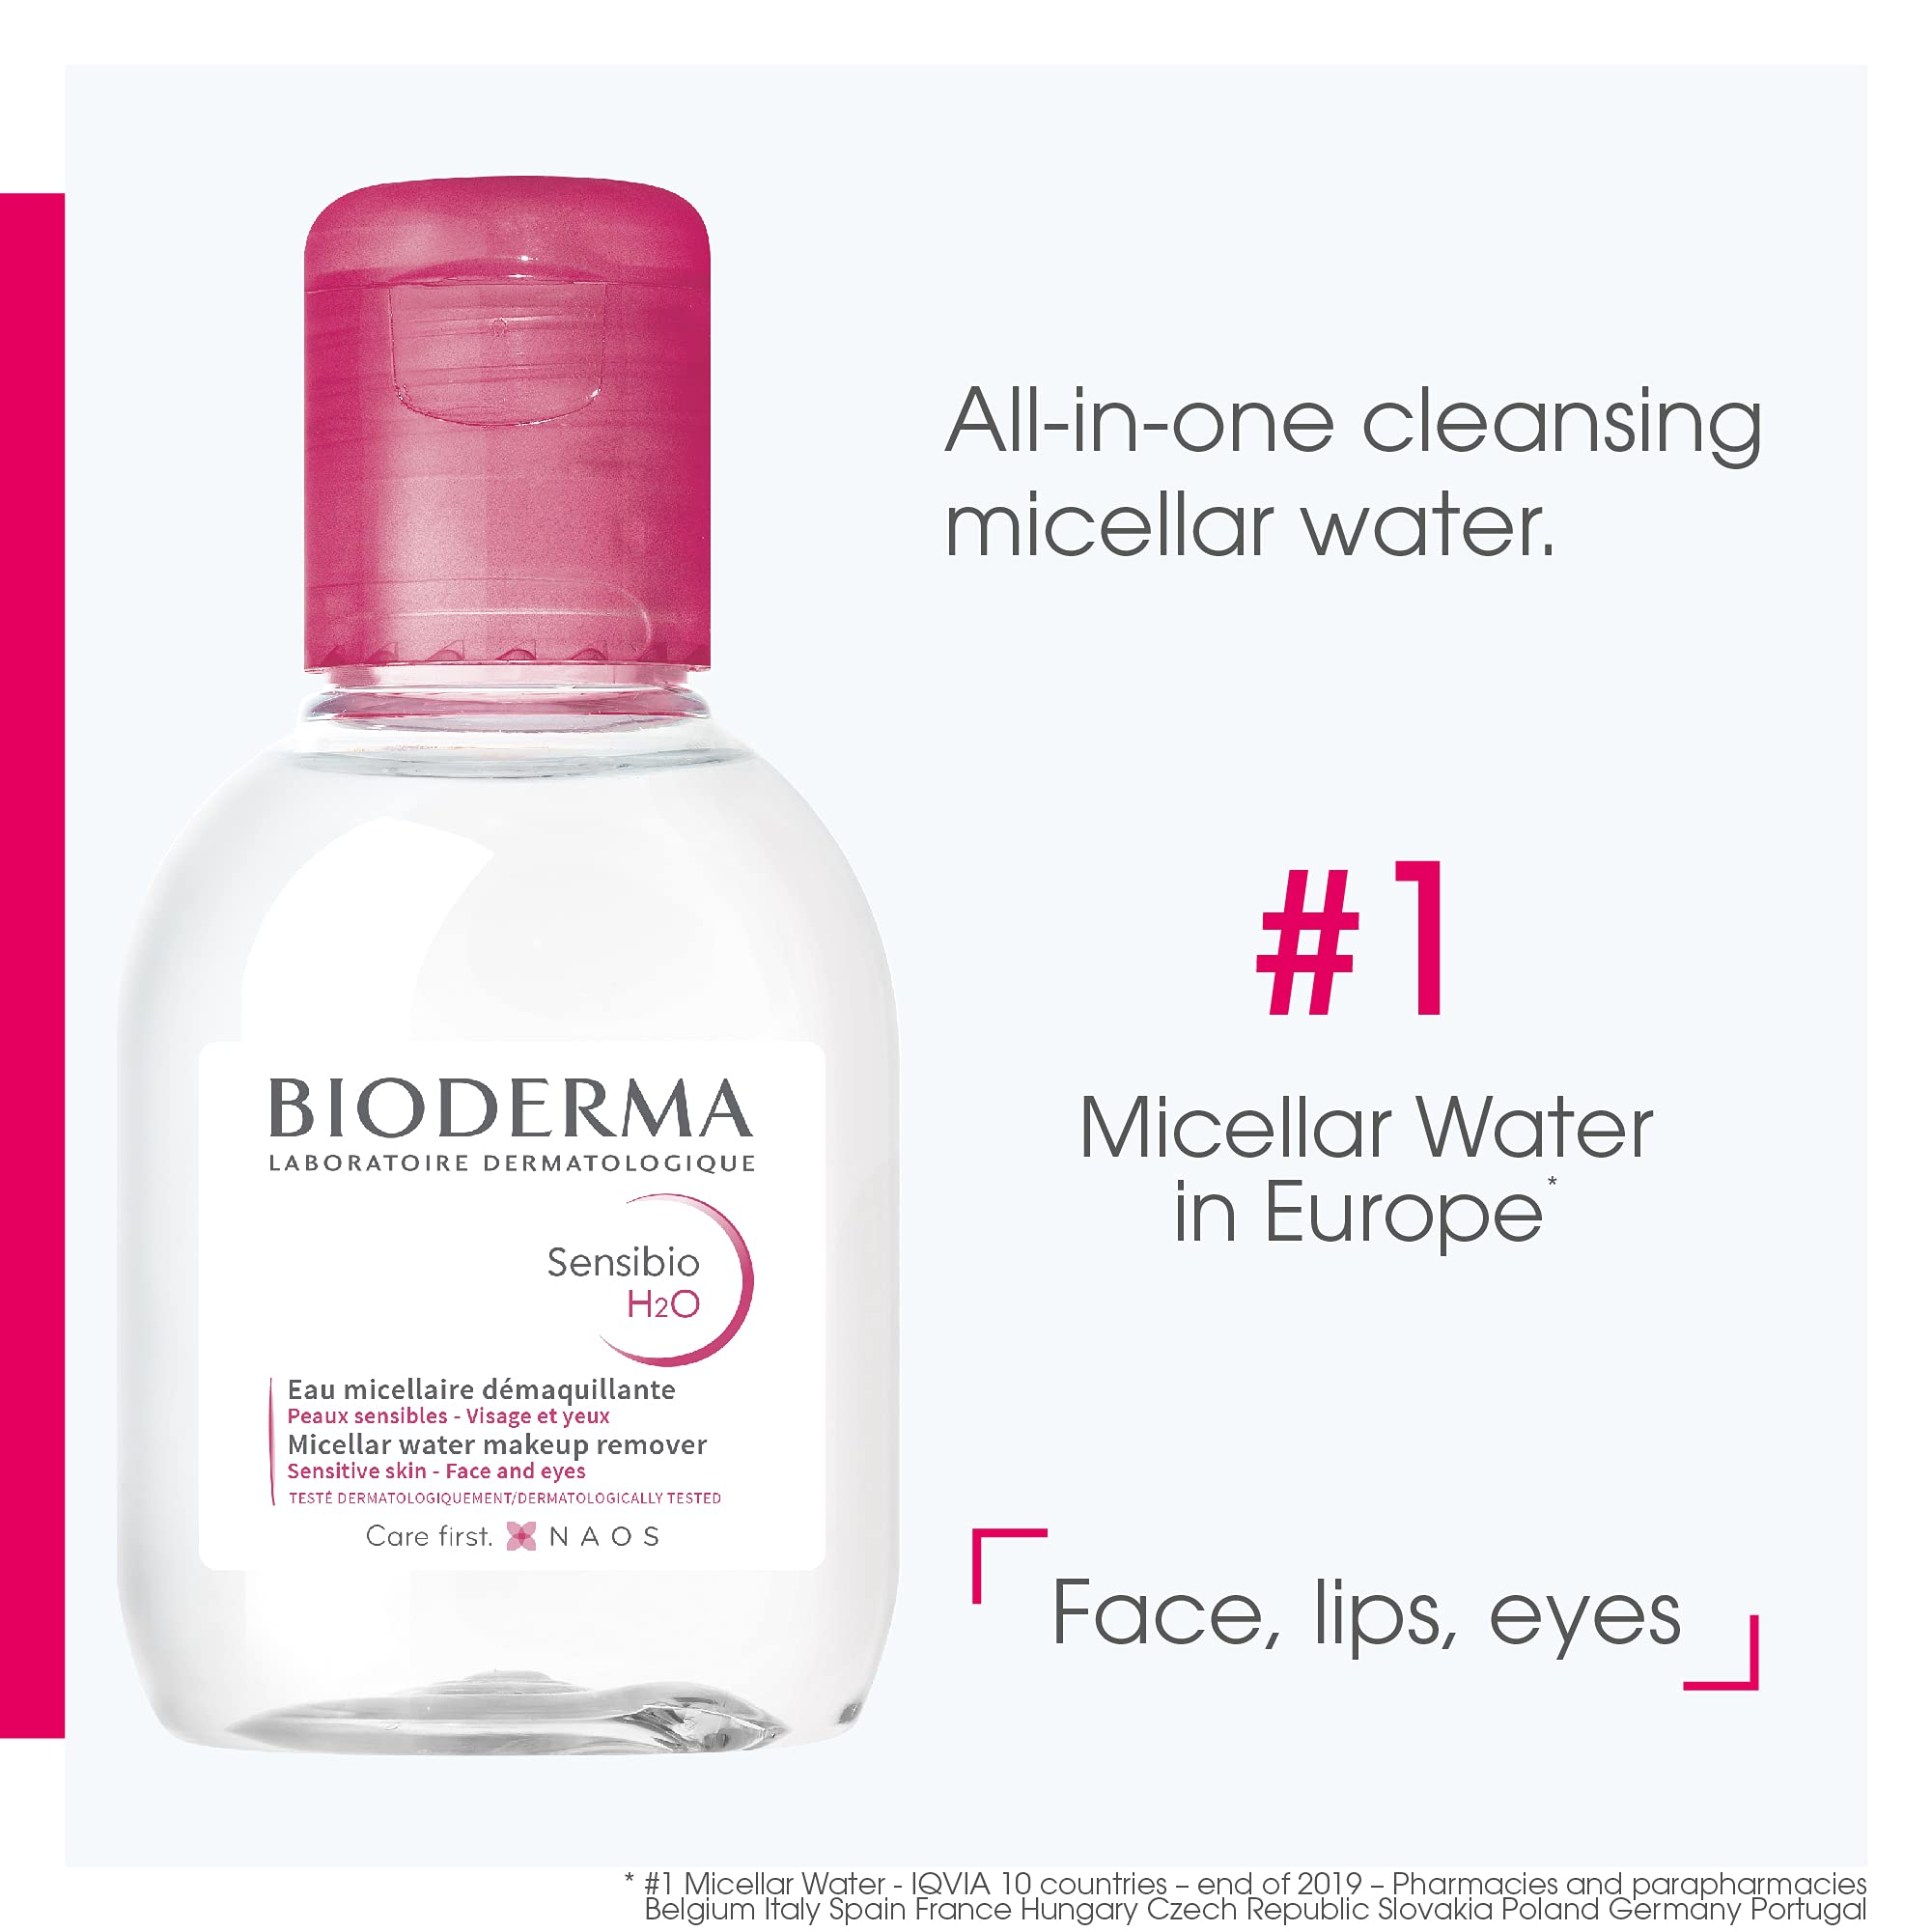 Bioderma Sensibio H2O Daily Soothing Cleanser, Make up Pollution & Impurities Remover Face Eyes Sensitive skin, 100ml